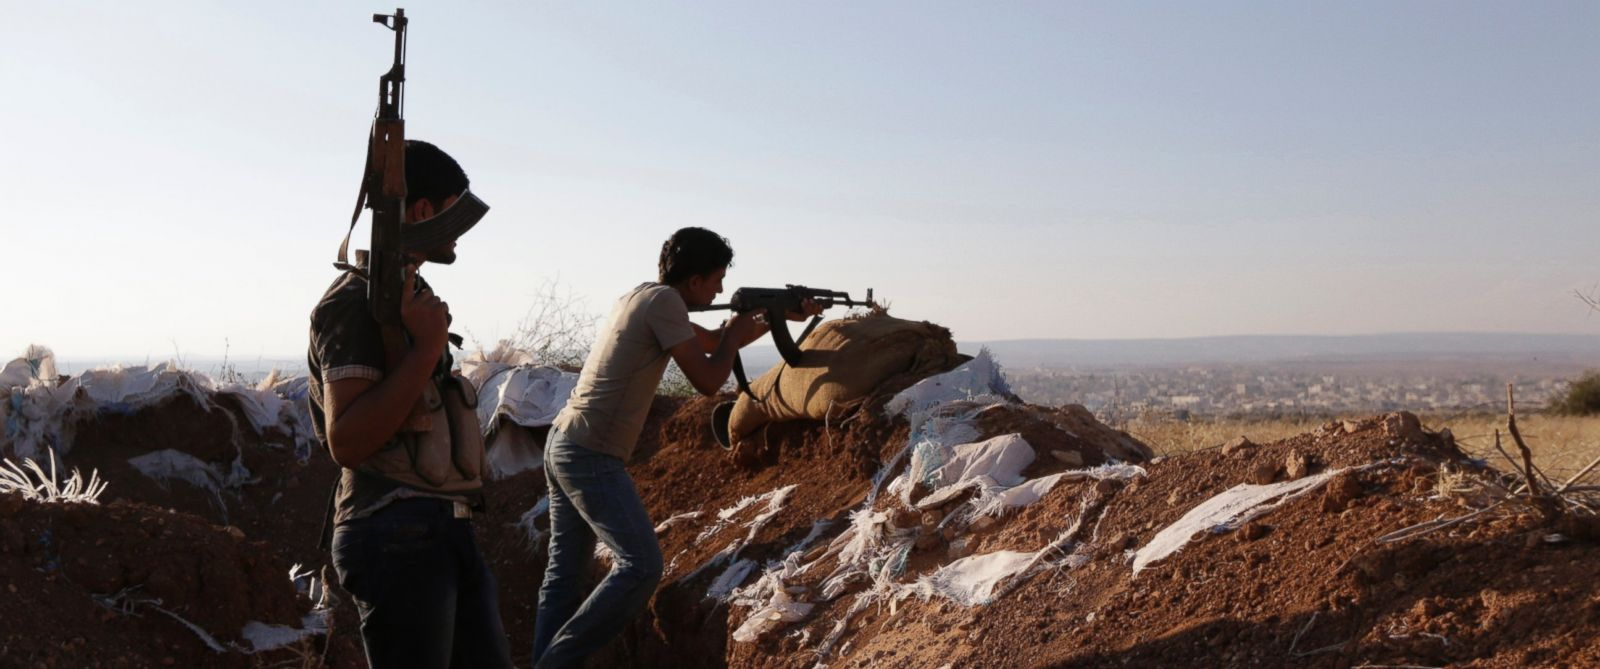 PHOTO: Armed Free Syrian Army fighters stand on one of the frontlines of Wadi Al-Dayf camp in the southern Idlib, Syria, countryside, Sept. 14, 2014.